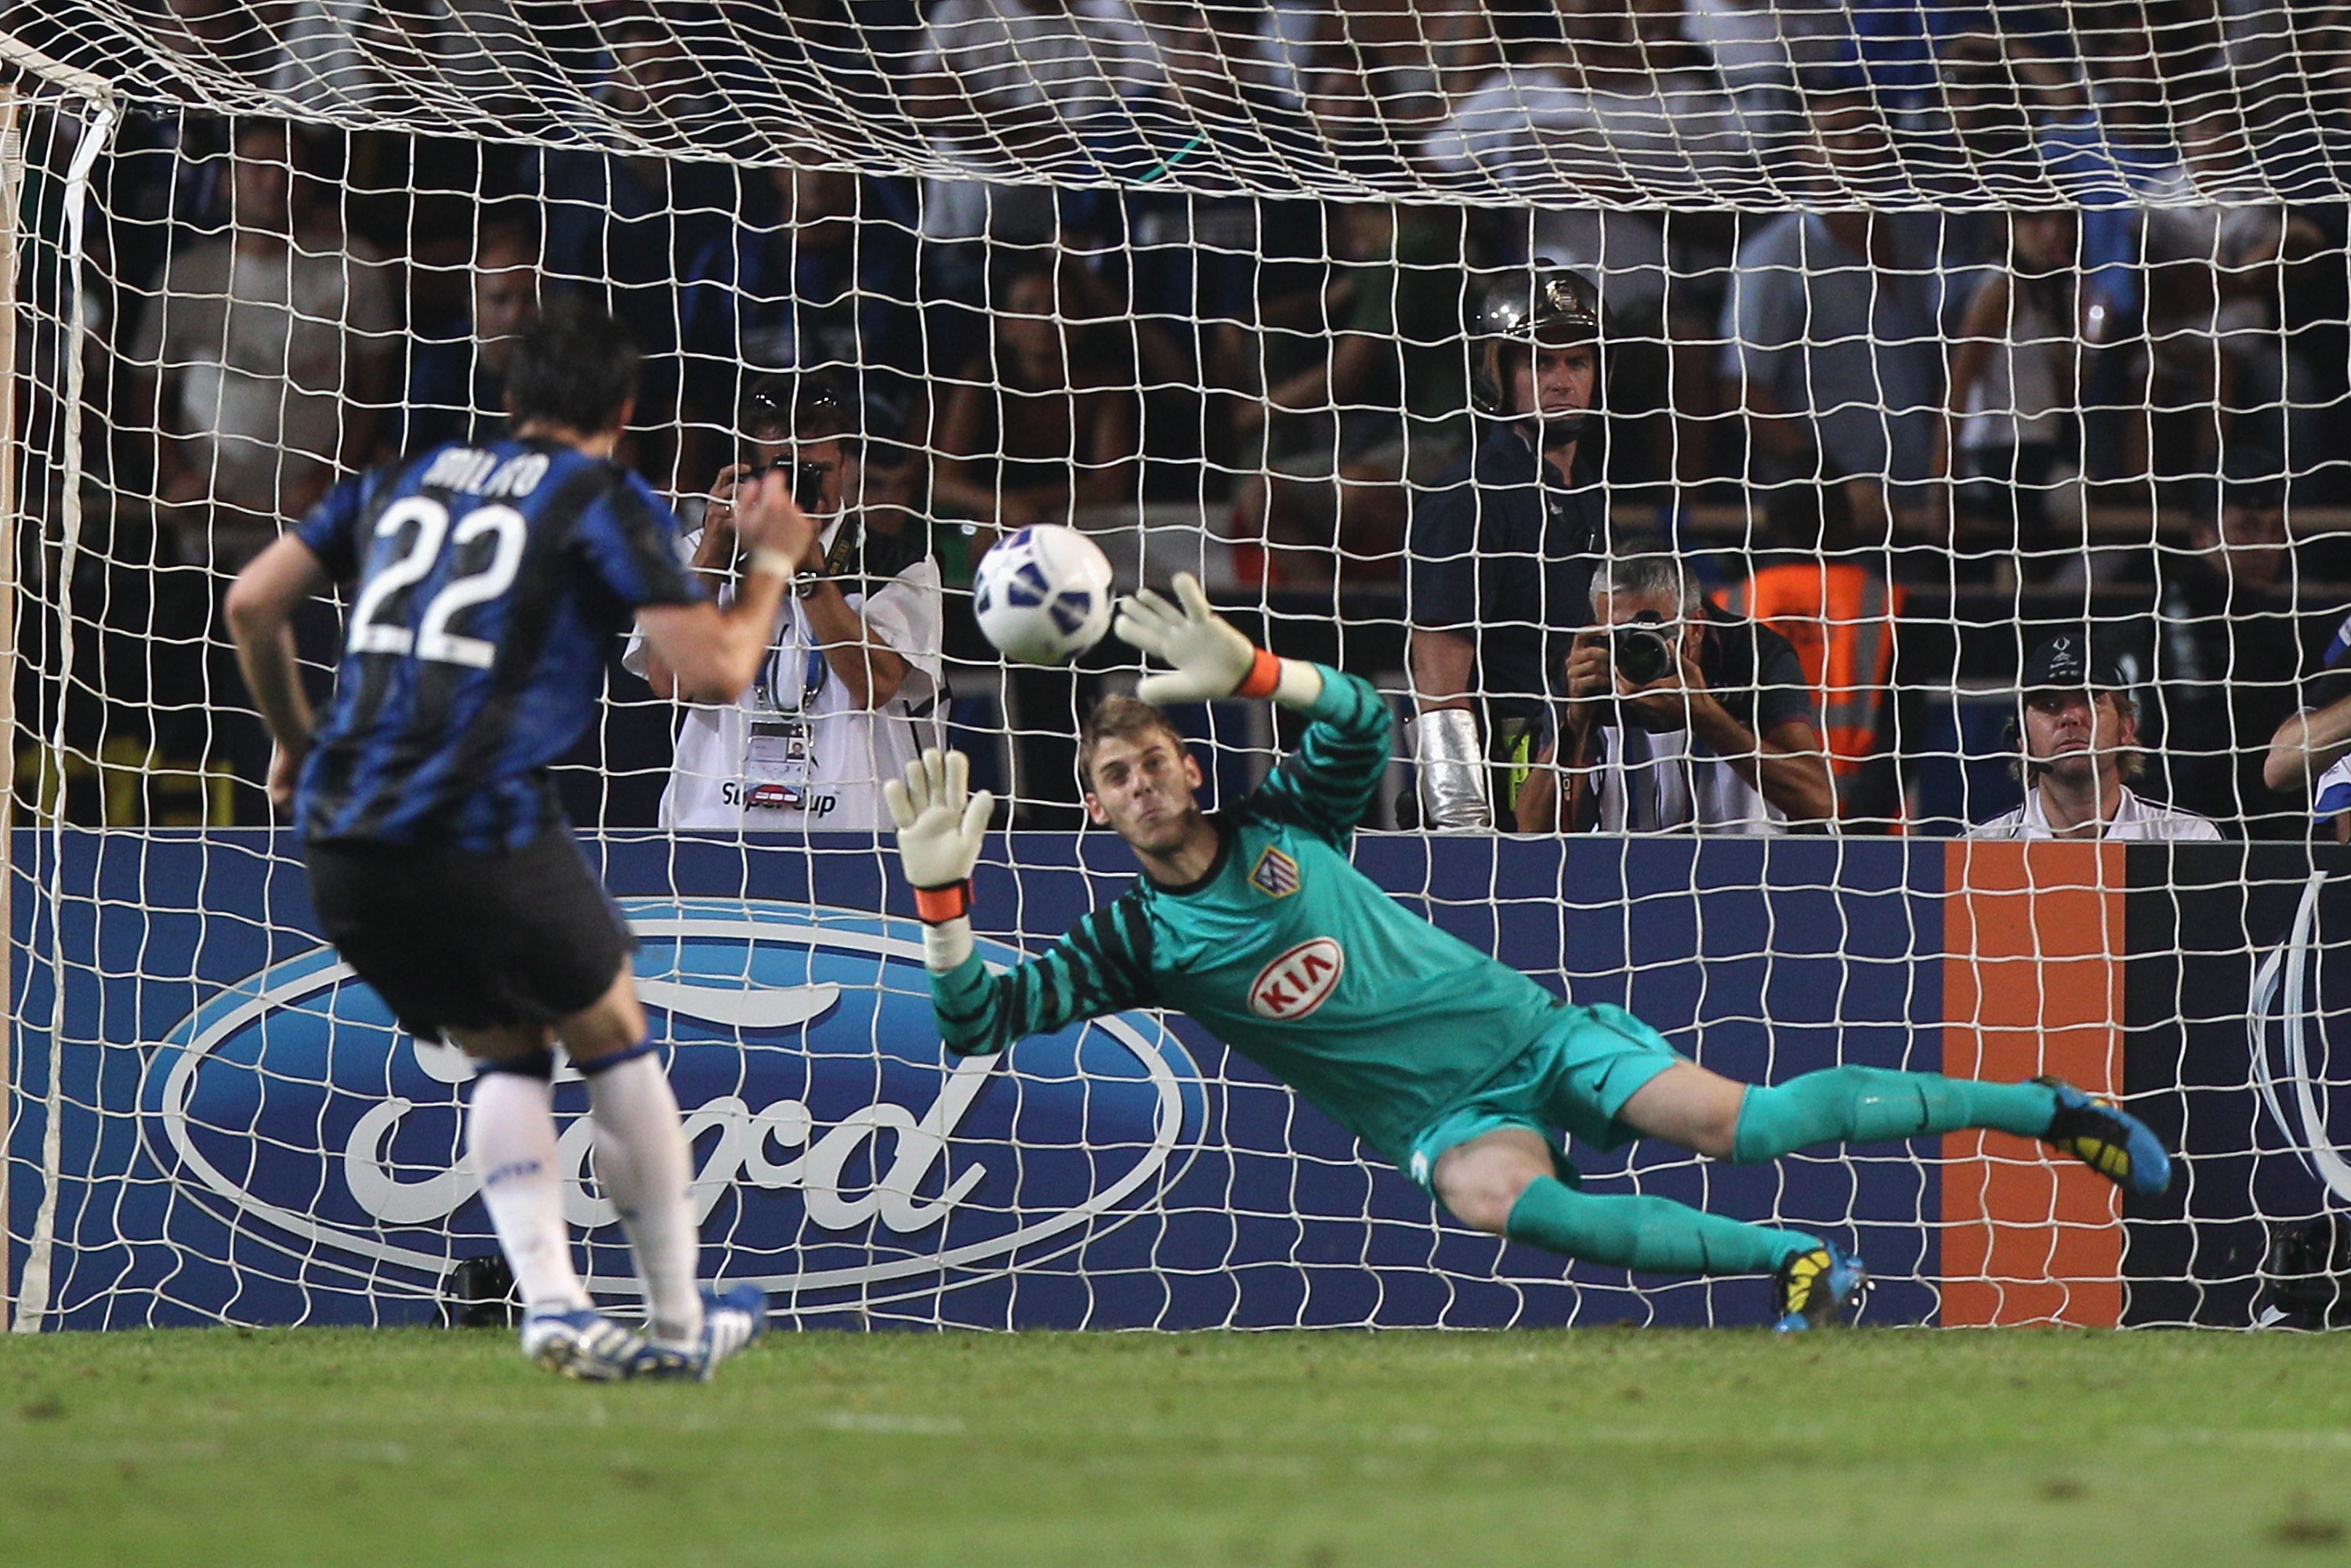 Soccer: Ranking the Top 10 Penalty-Stopping Goalkeepers in the World |  Bleacher Report | Latest News, Videos and Highlights